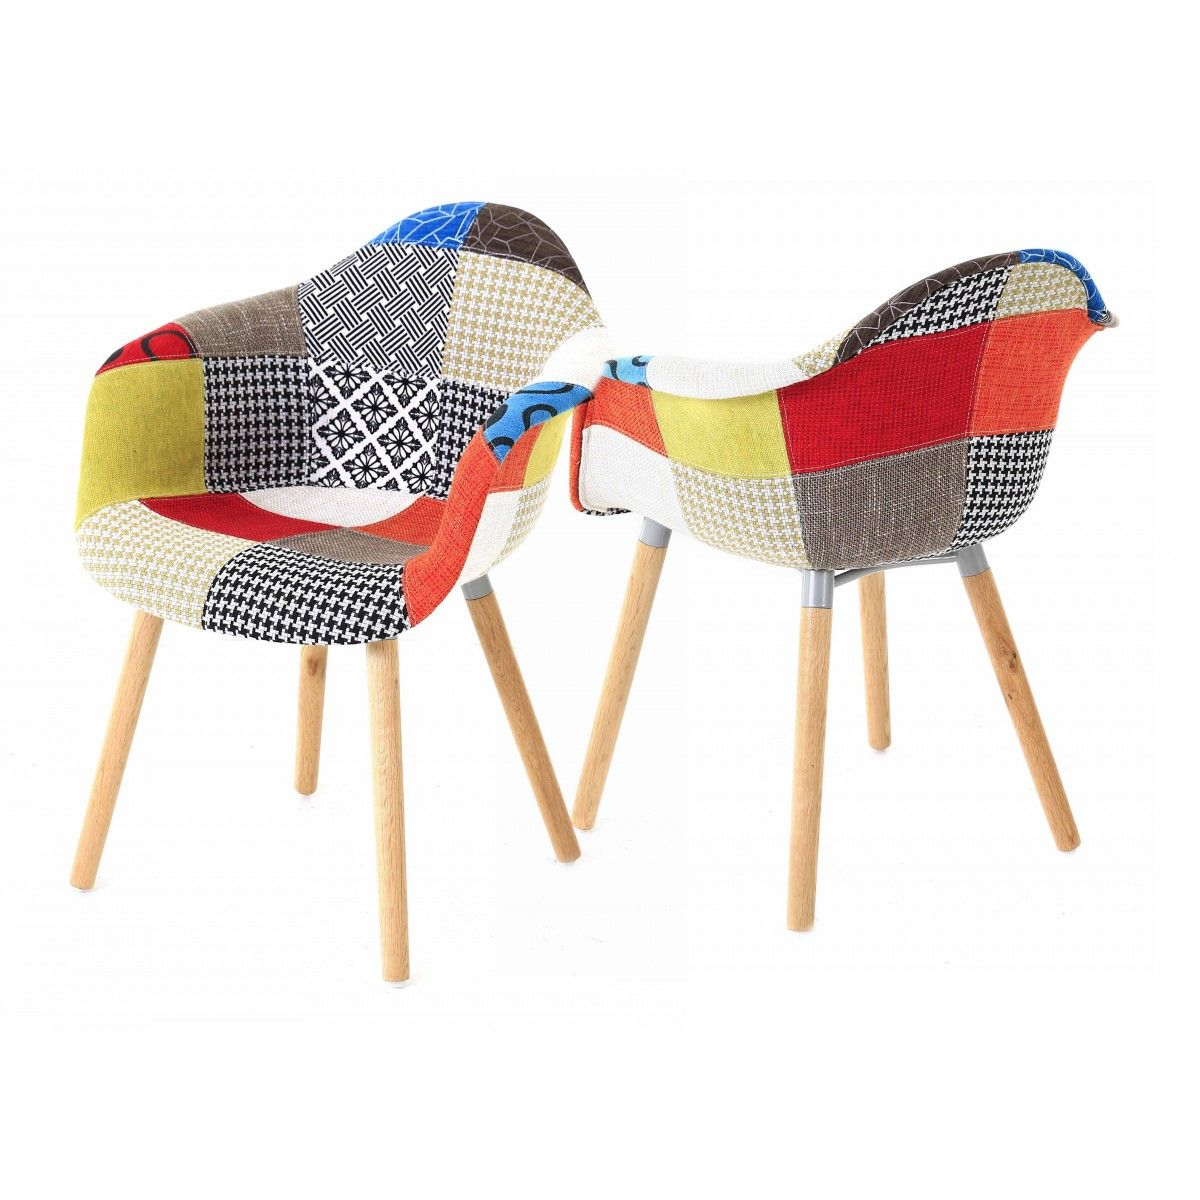 Fauteuils Scandinaves Patchwork 2x Fauteuil Design Multicolore Patchwork Katia Divine Home